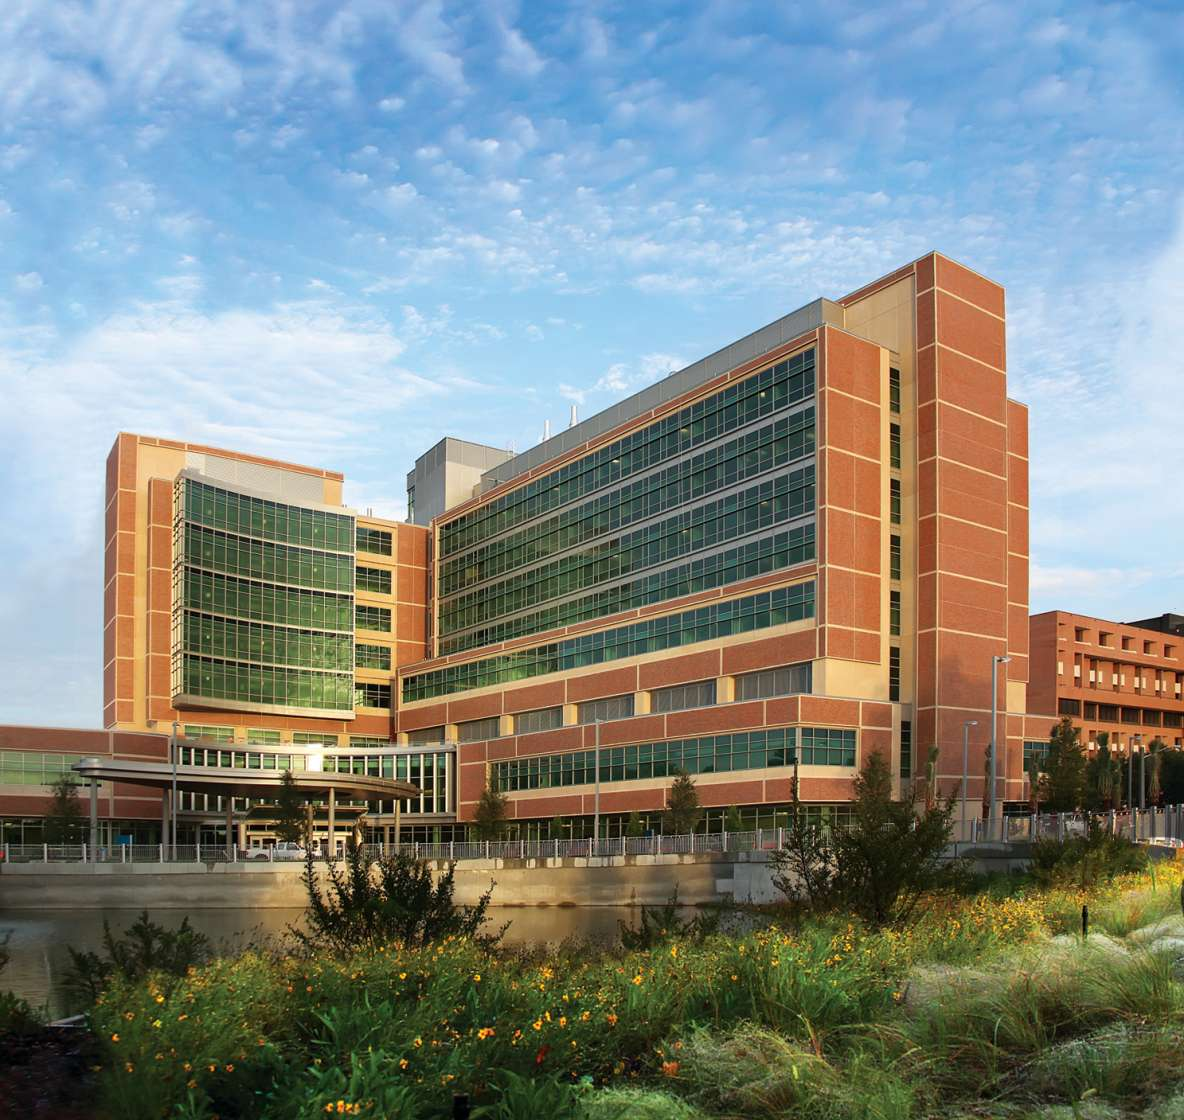 picture of uf cancer hospital